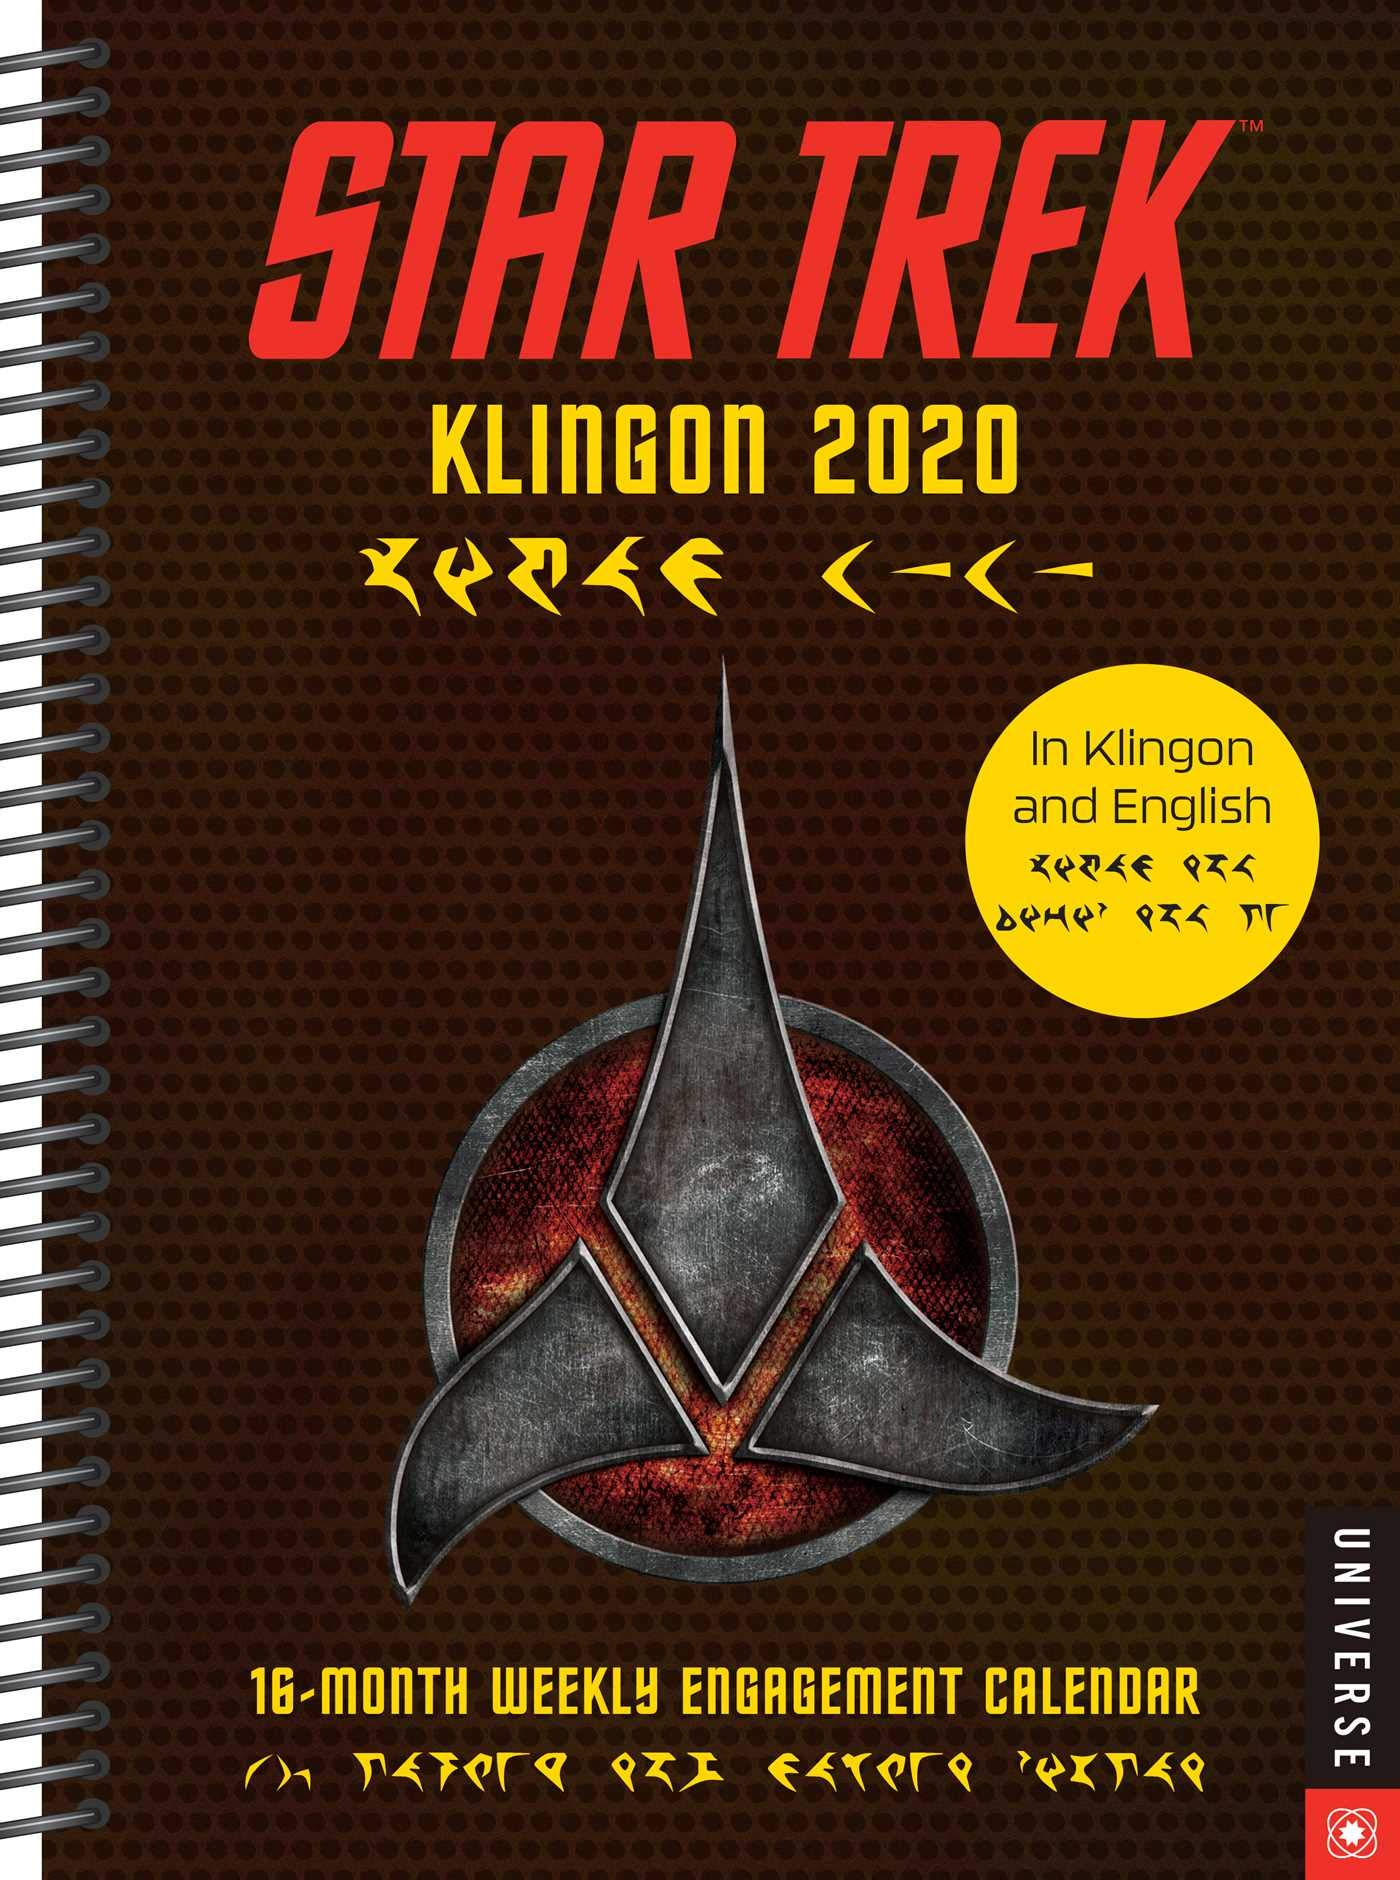 Star Trek Klingon 2020 Calendar: 16-Month Weekly Engagement Calendar by Universe Publishing